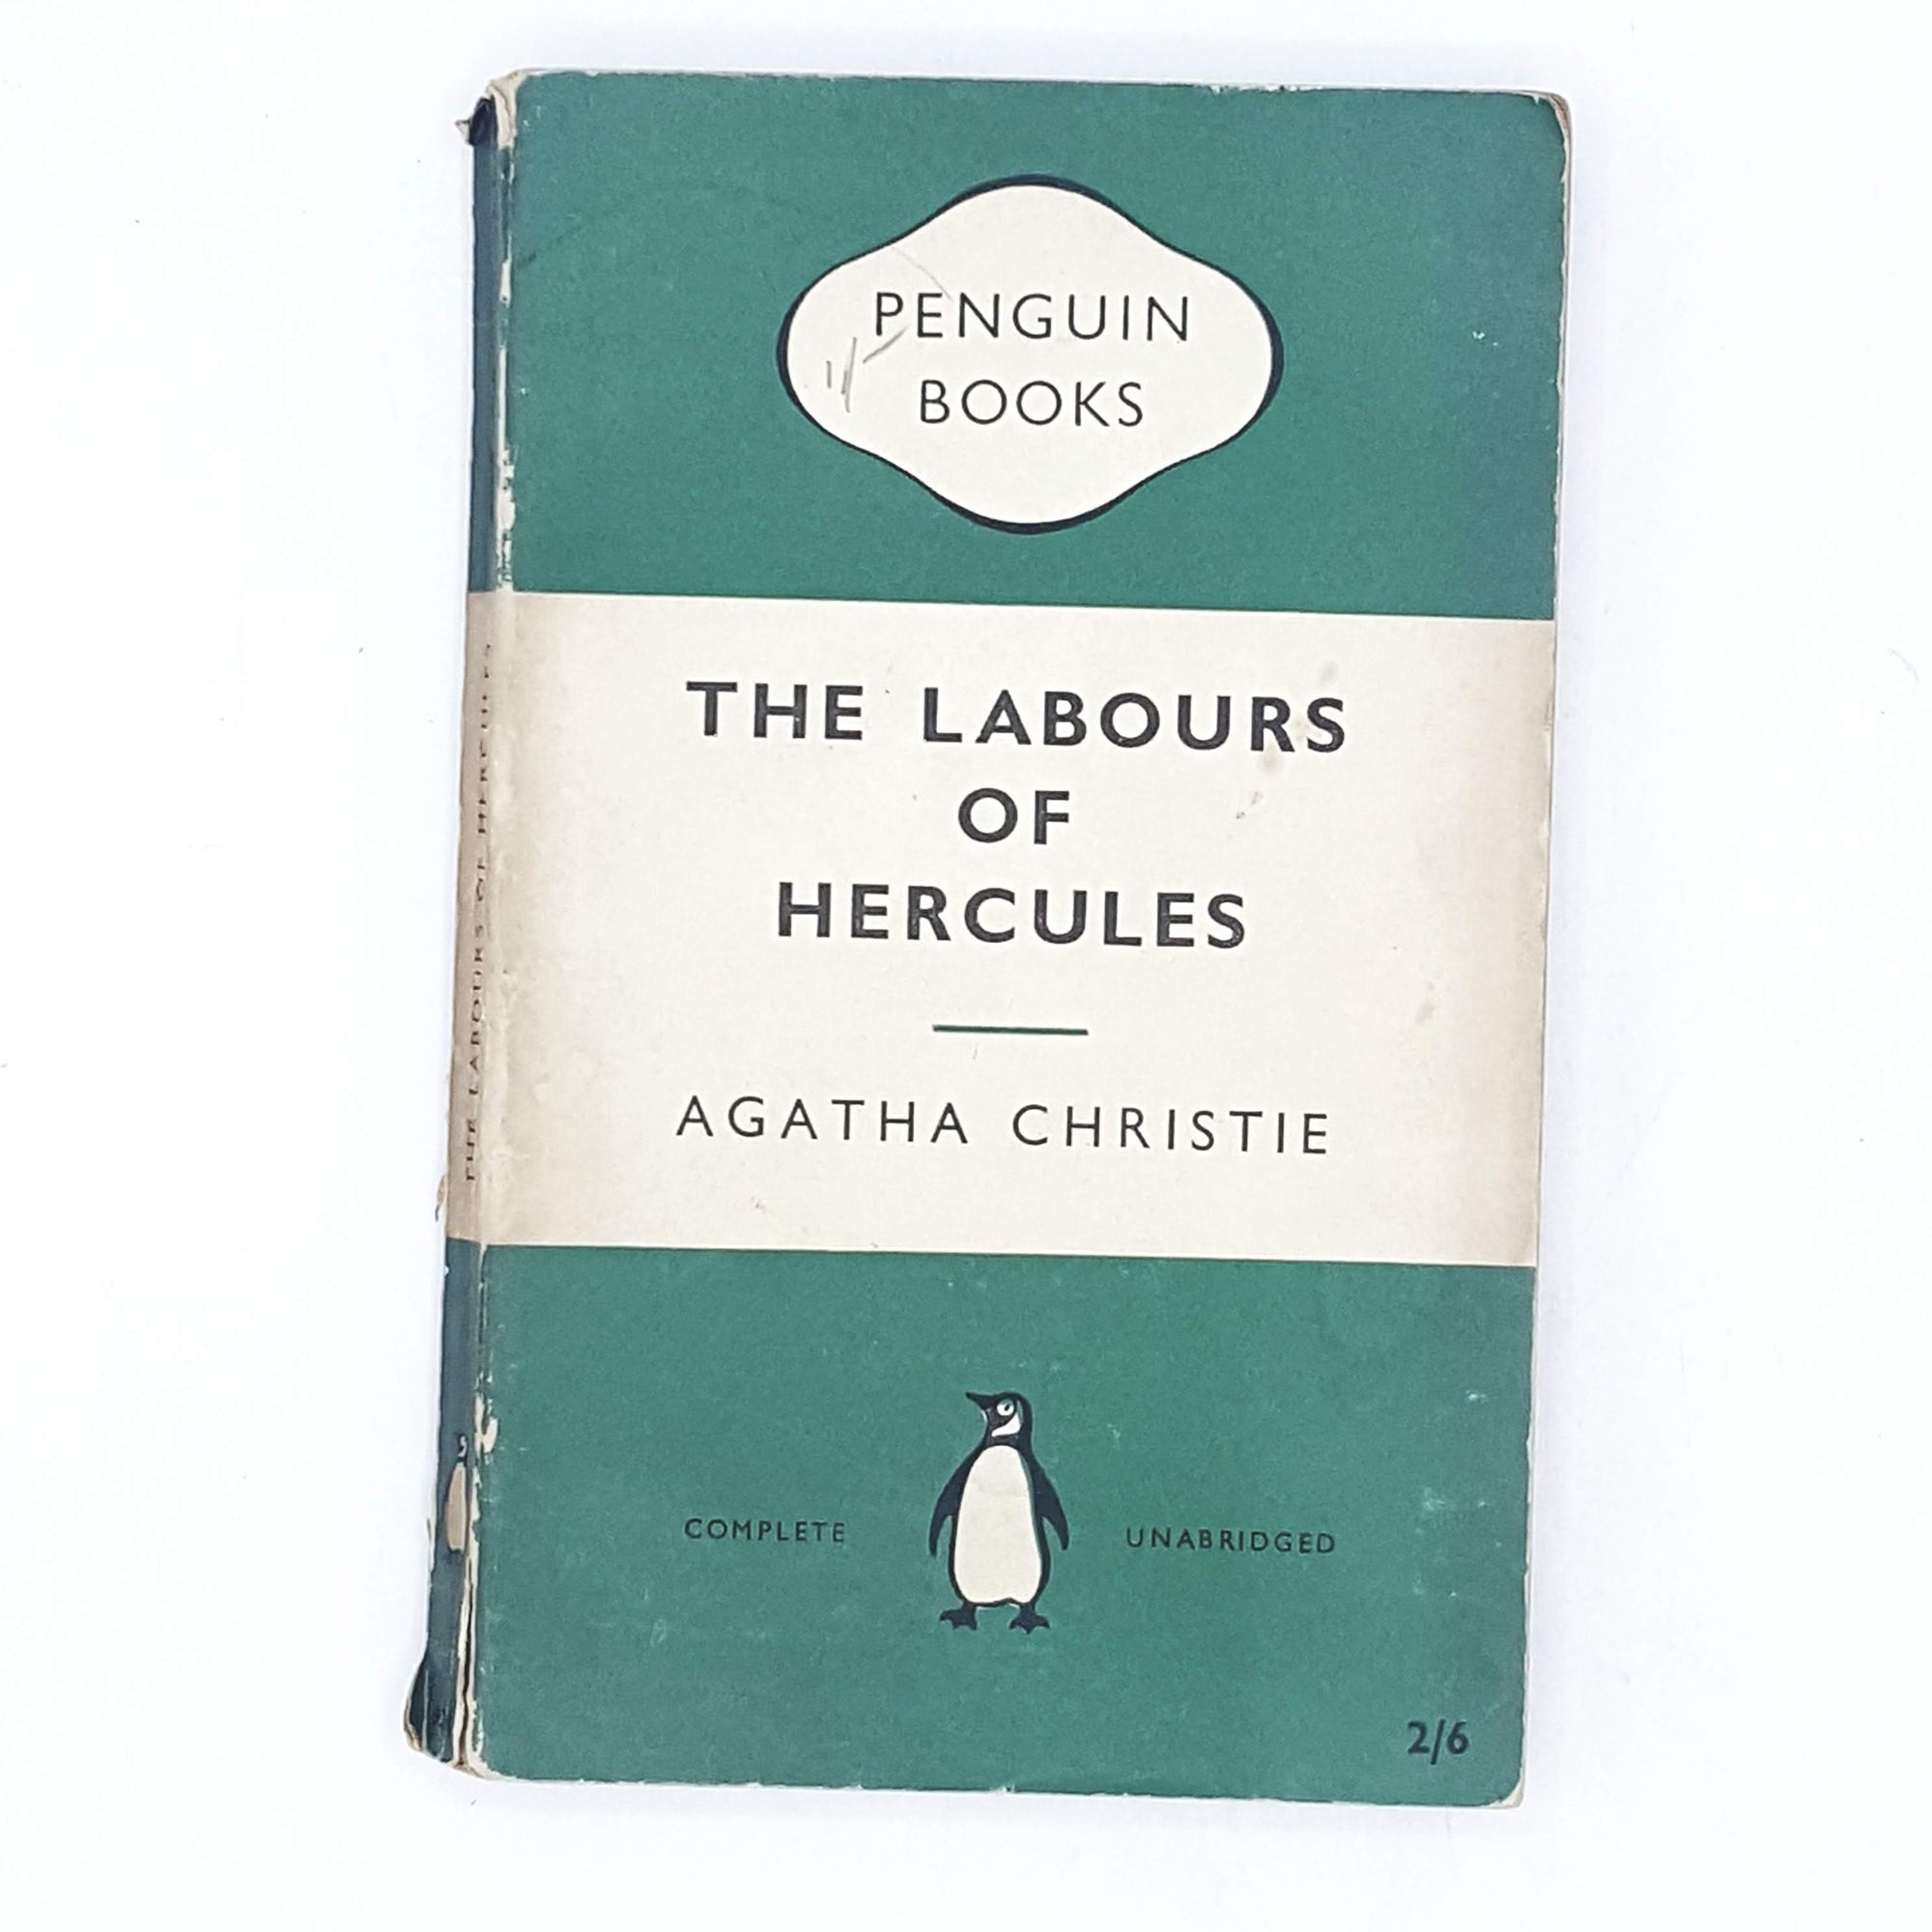 Agatha Christie's The Labours of Hercules 1953